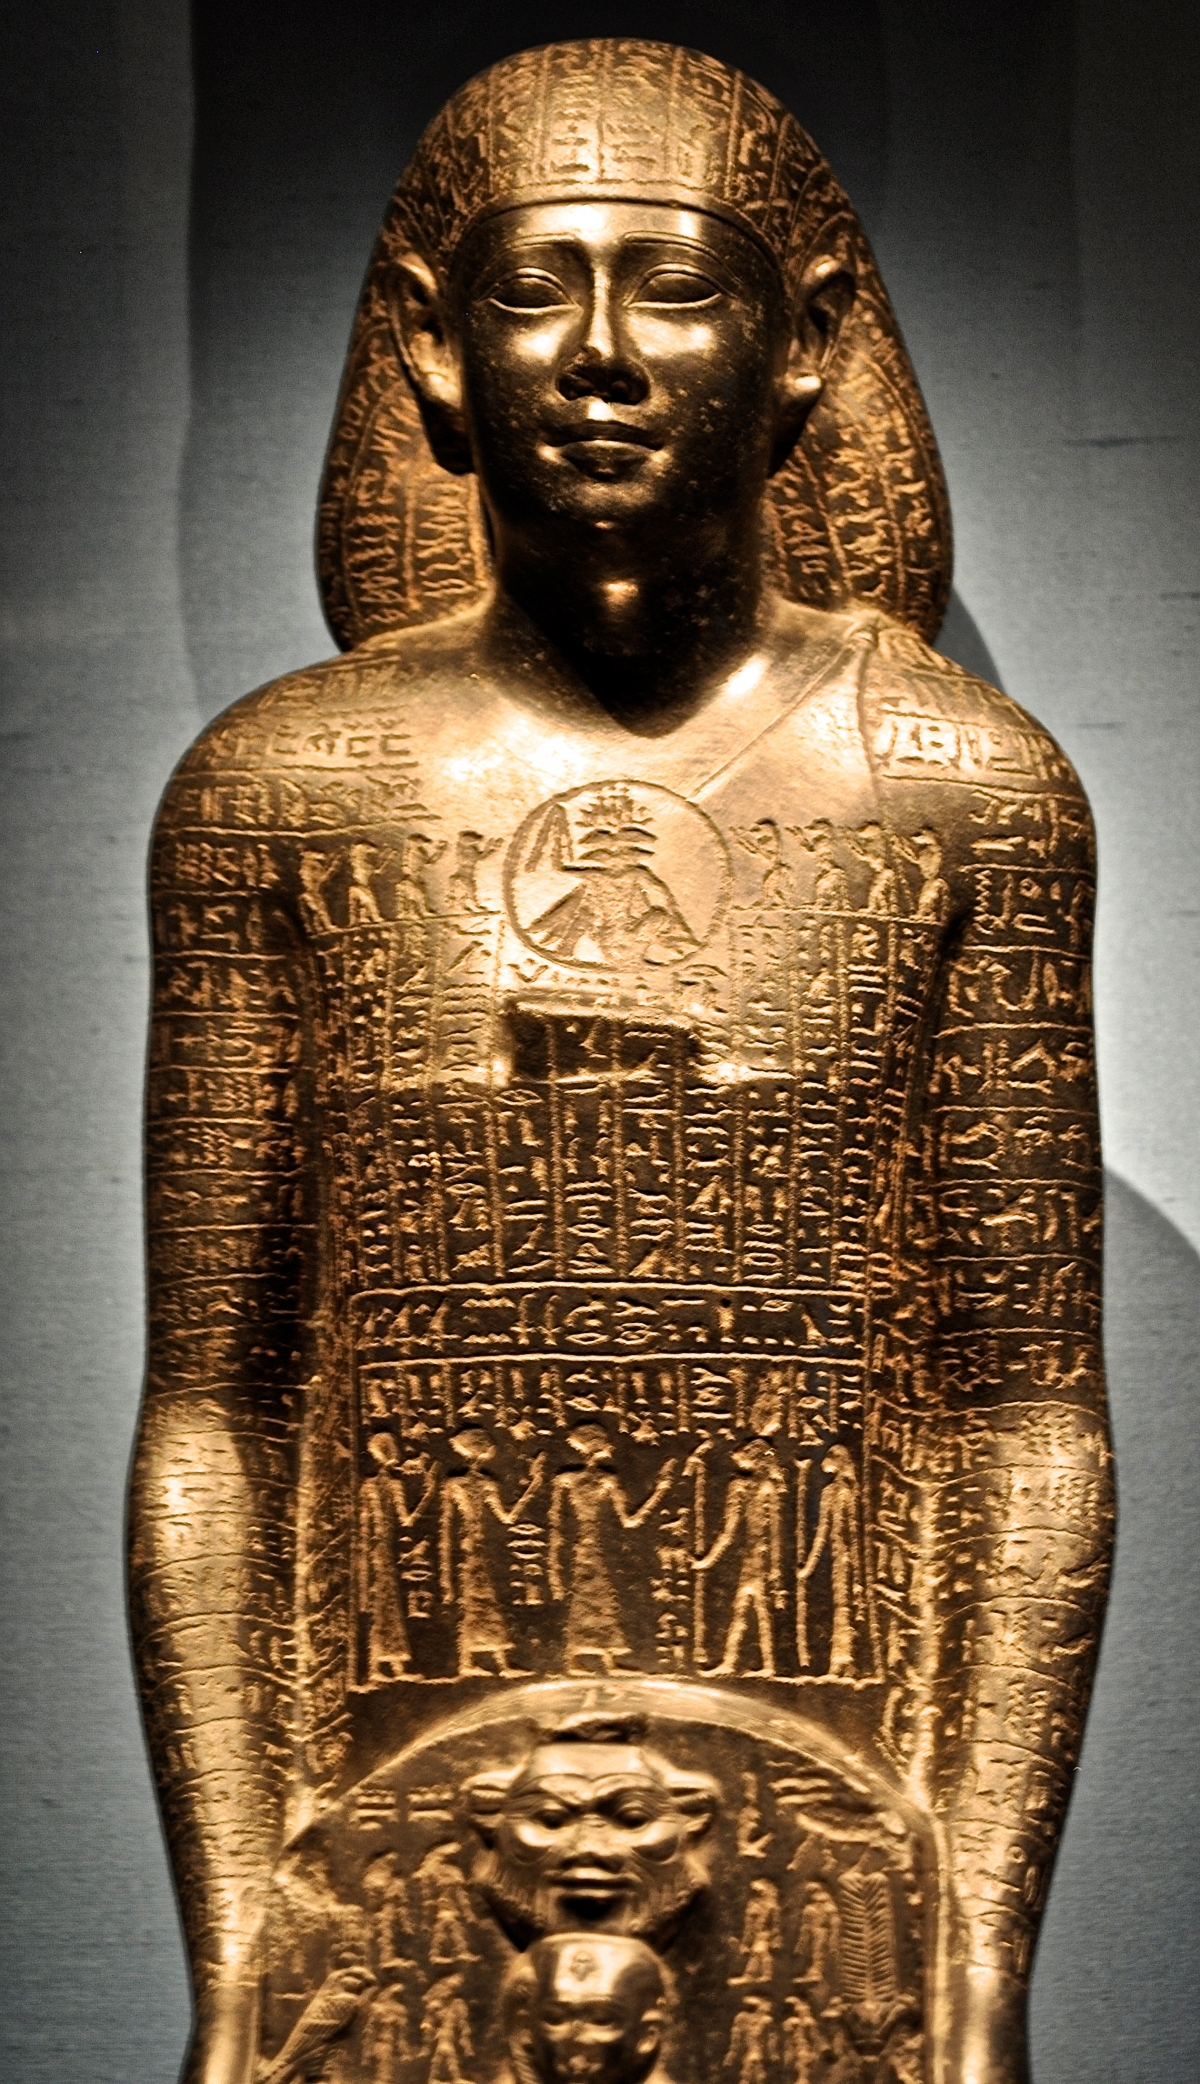 The Egyptians tended to present themselves very formally and in idealised poses